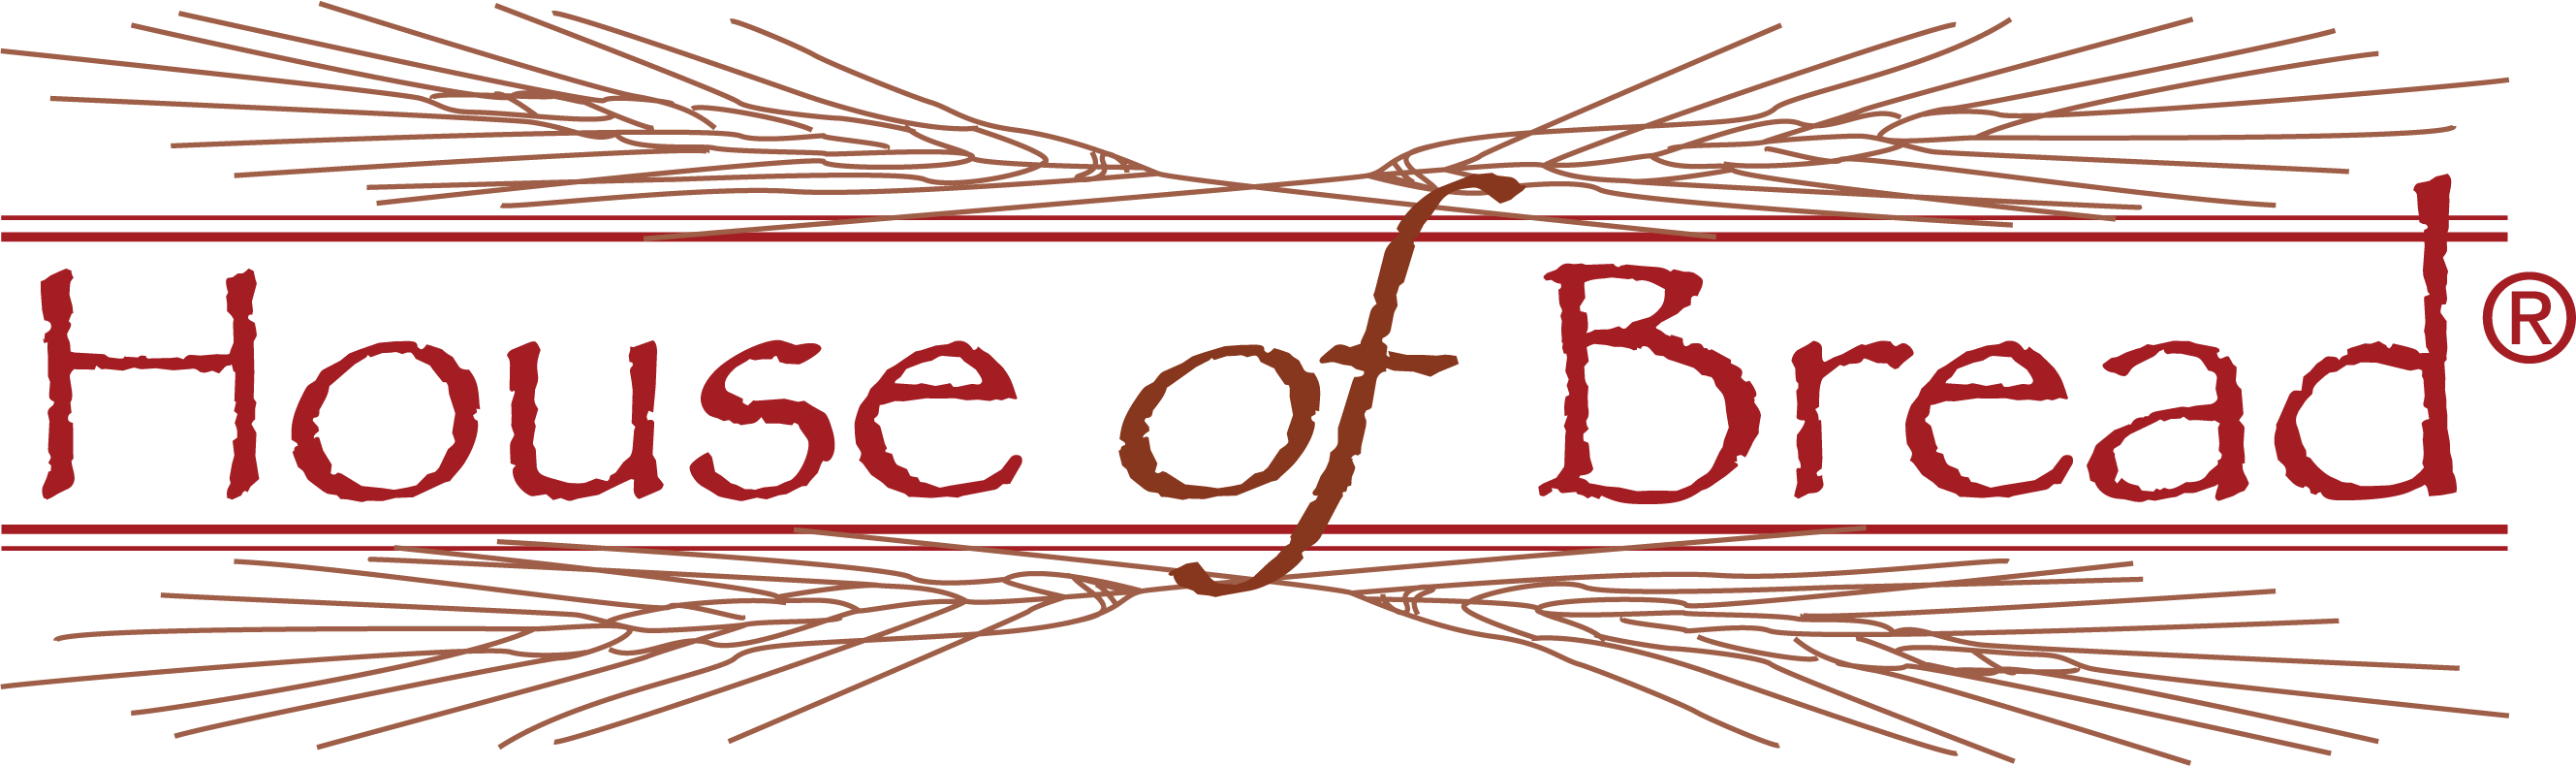 House of Bread Franchisee